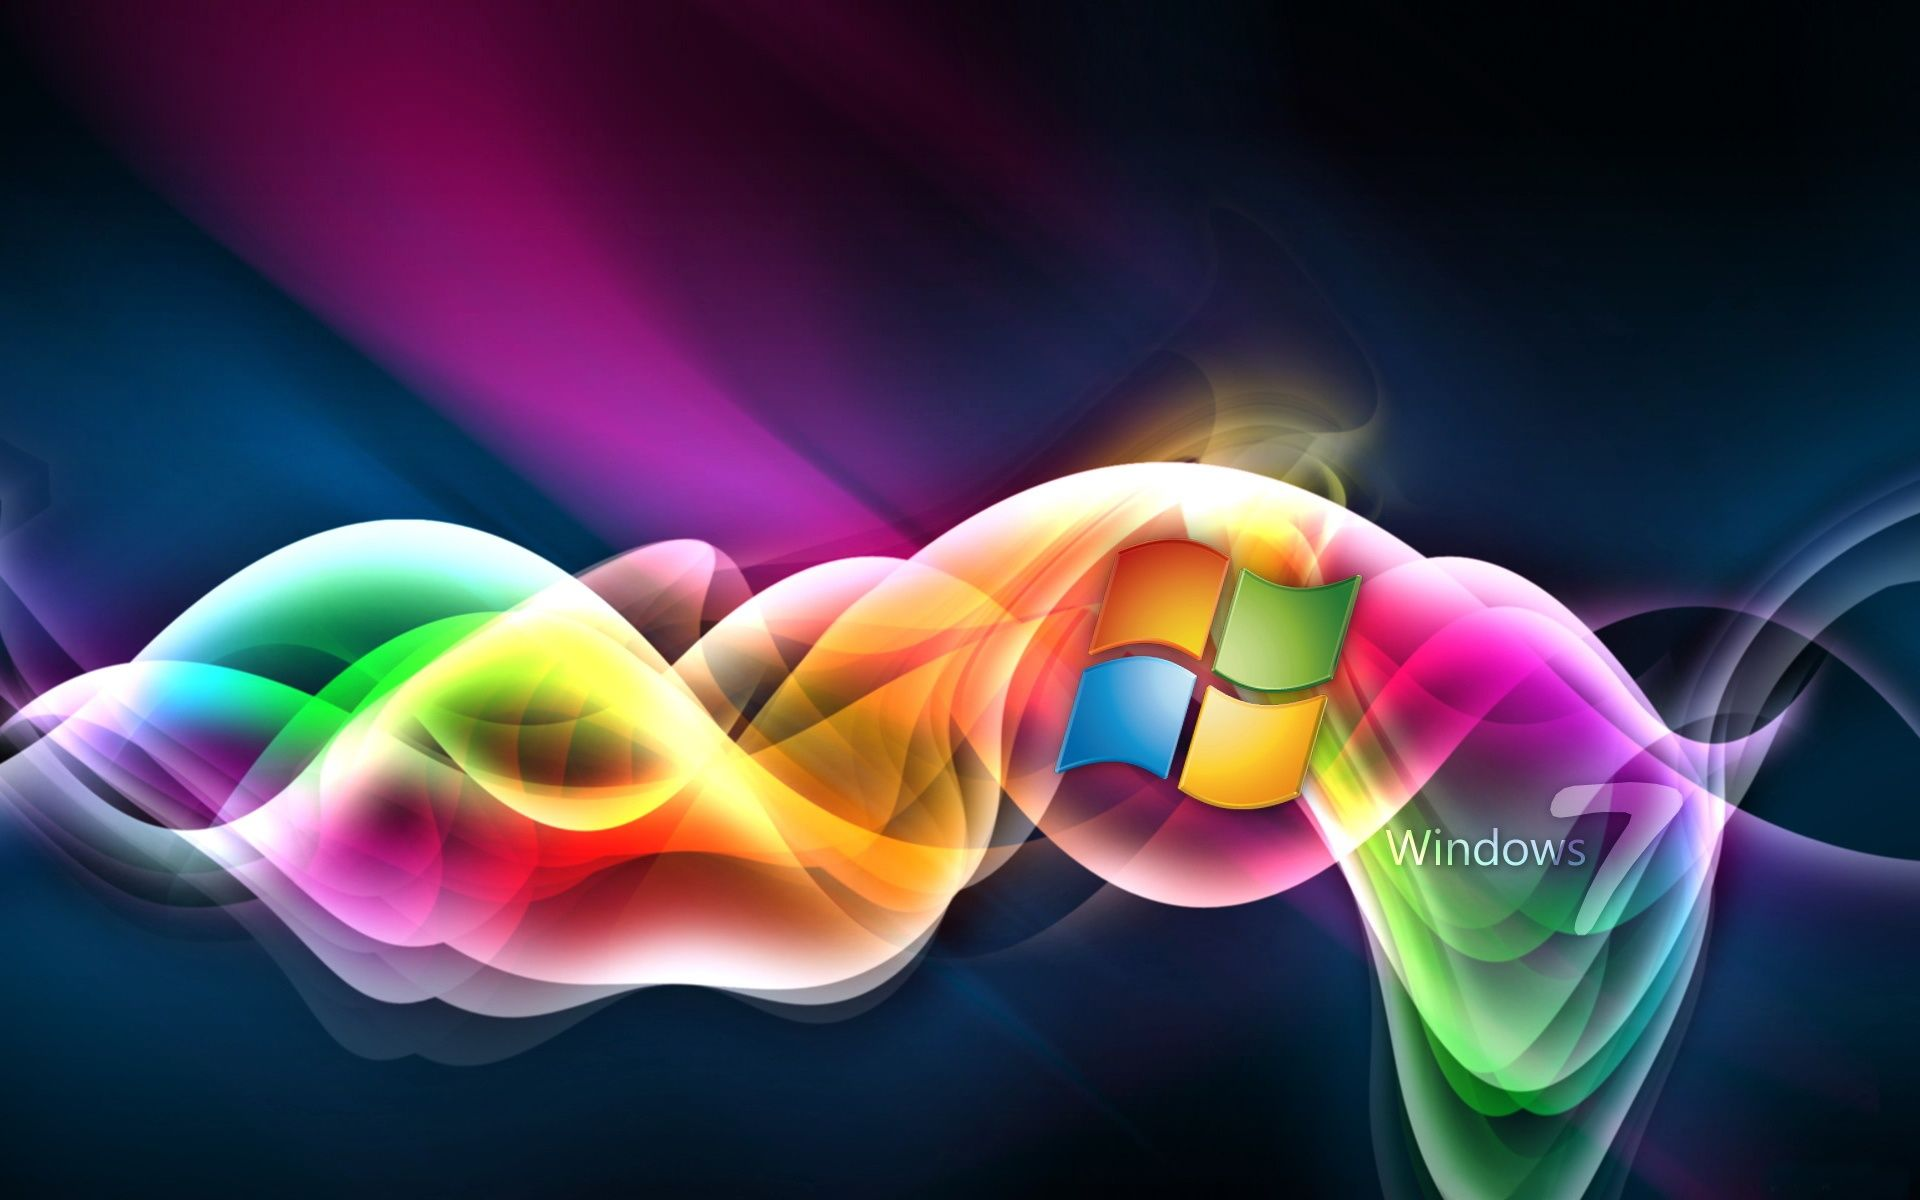 wallpapers windows 7 backgrounds windows 7 free